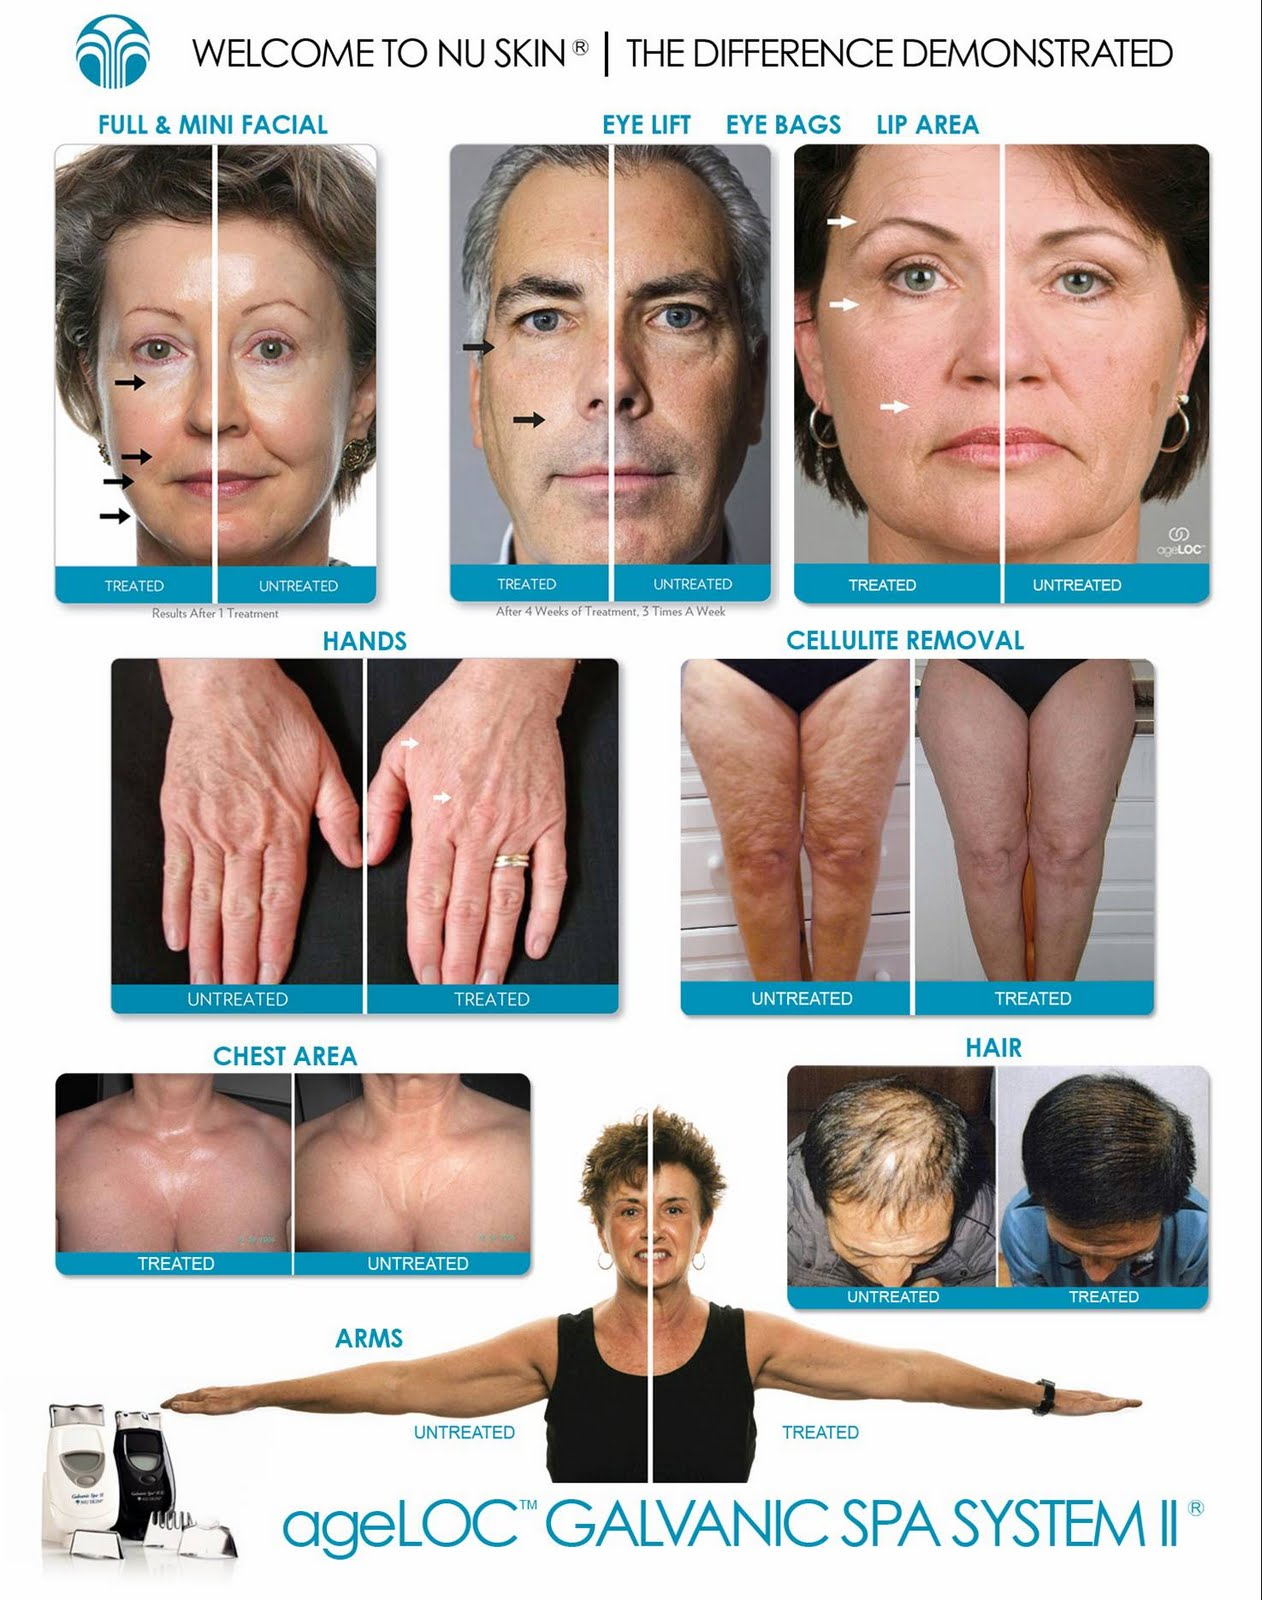 Nu Skin Galvanic Spa Before and After